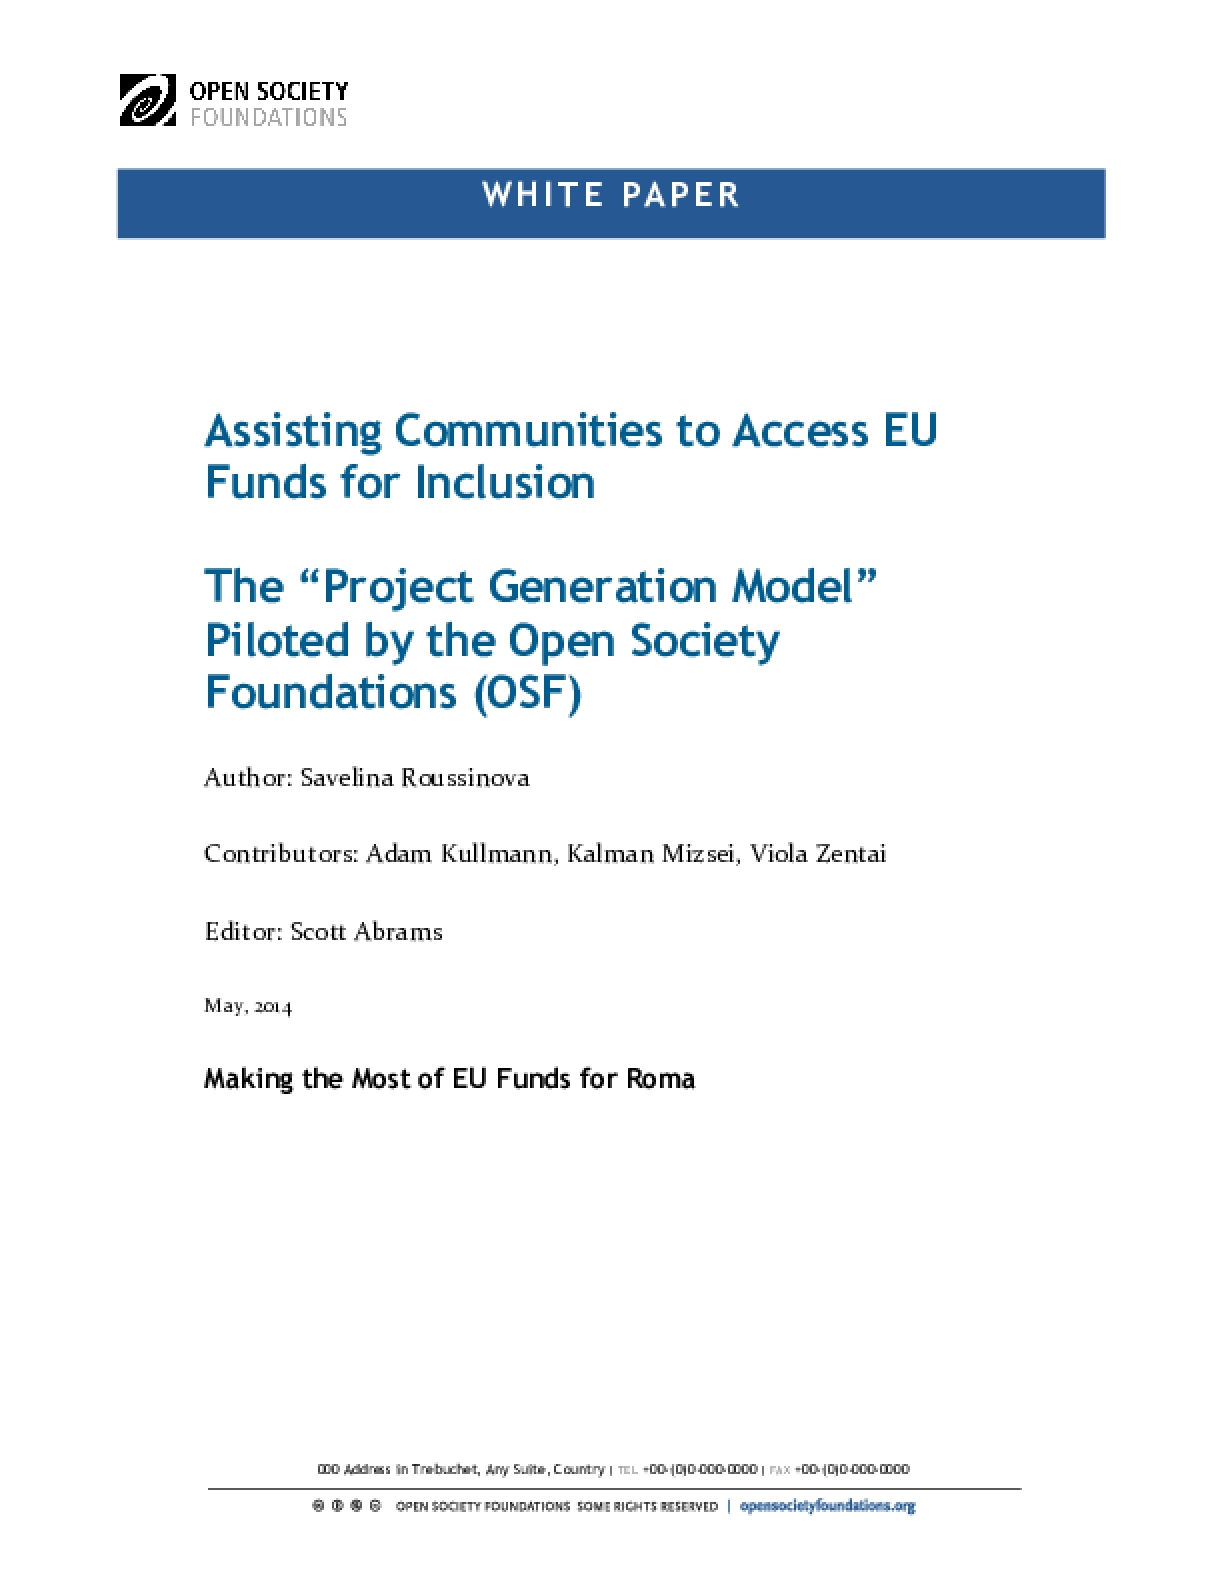 Assisting Communities to Access EU Funds for Inclusion